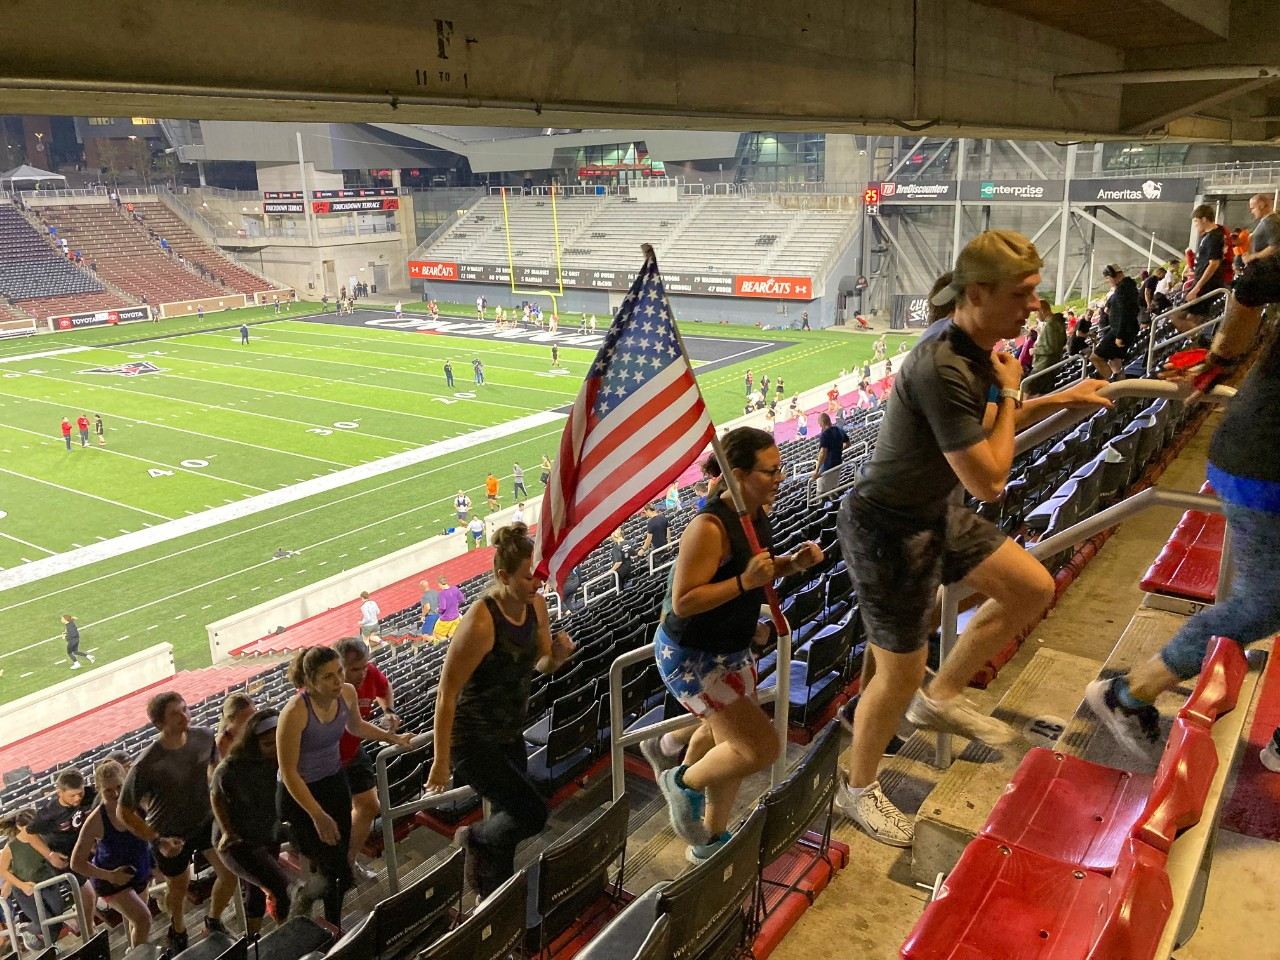 Students including one carrying an American flag run the steps of Nippert Stadium.